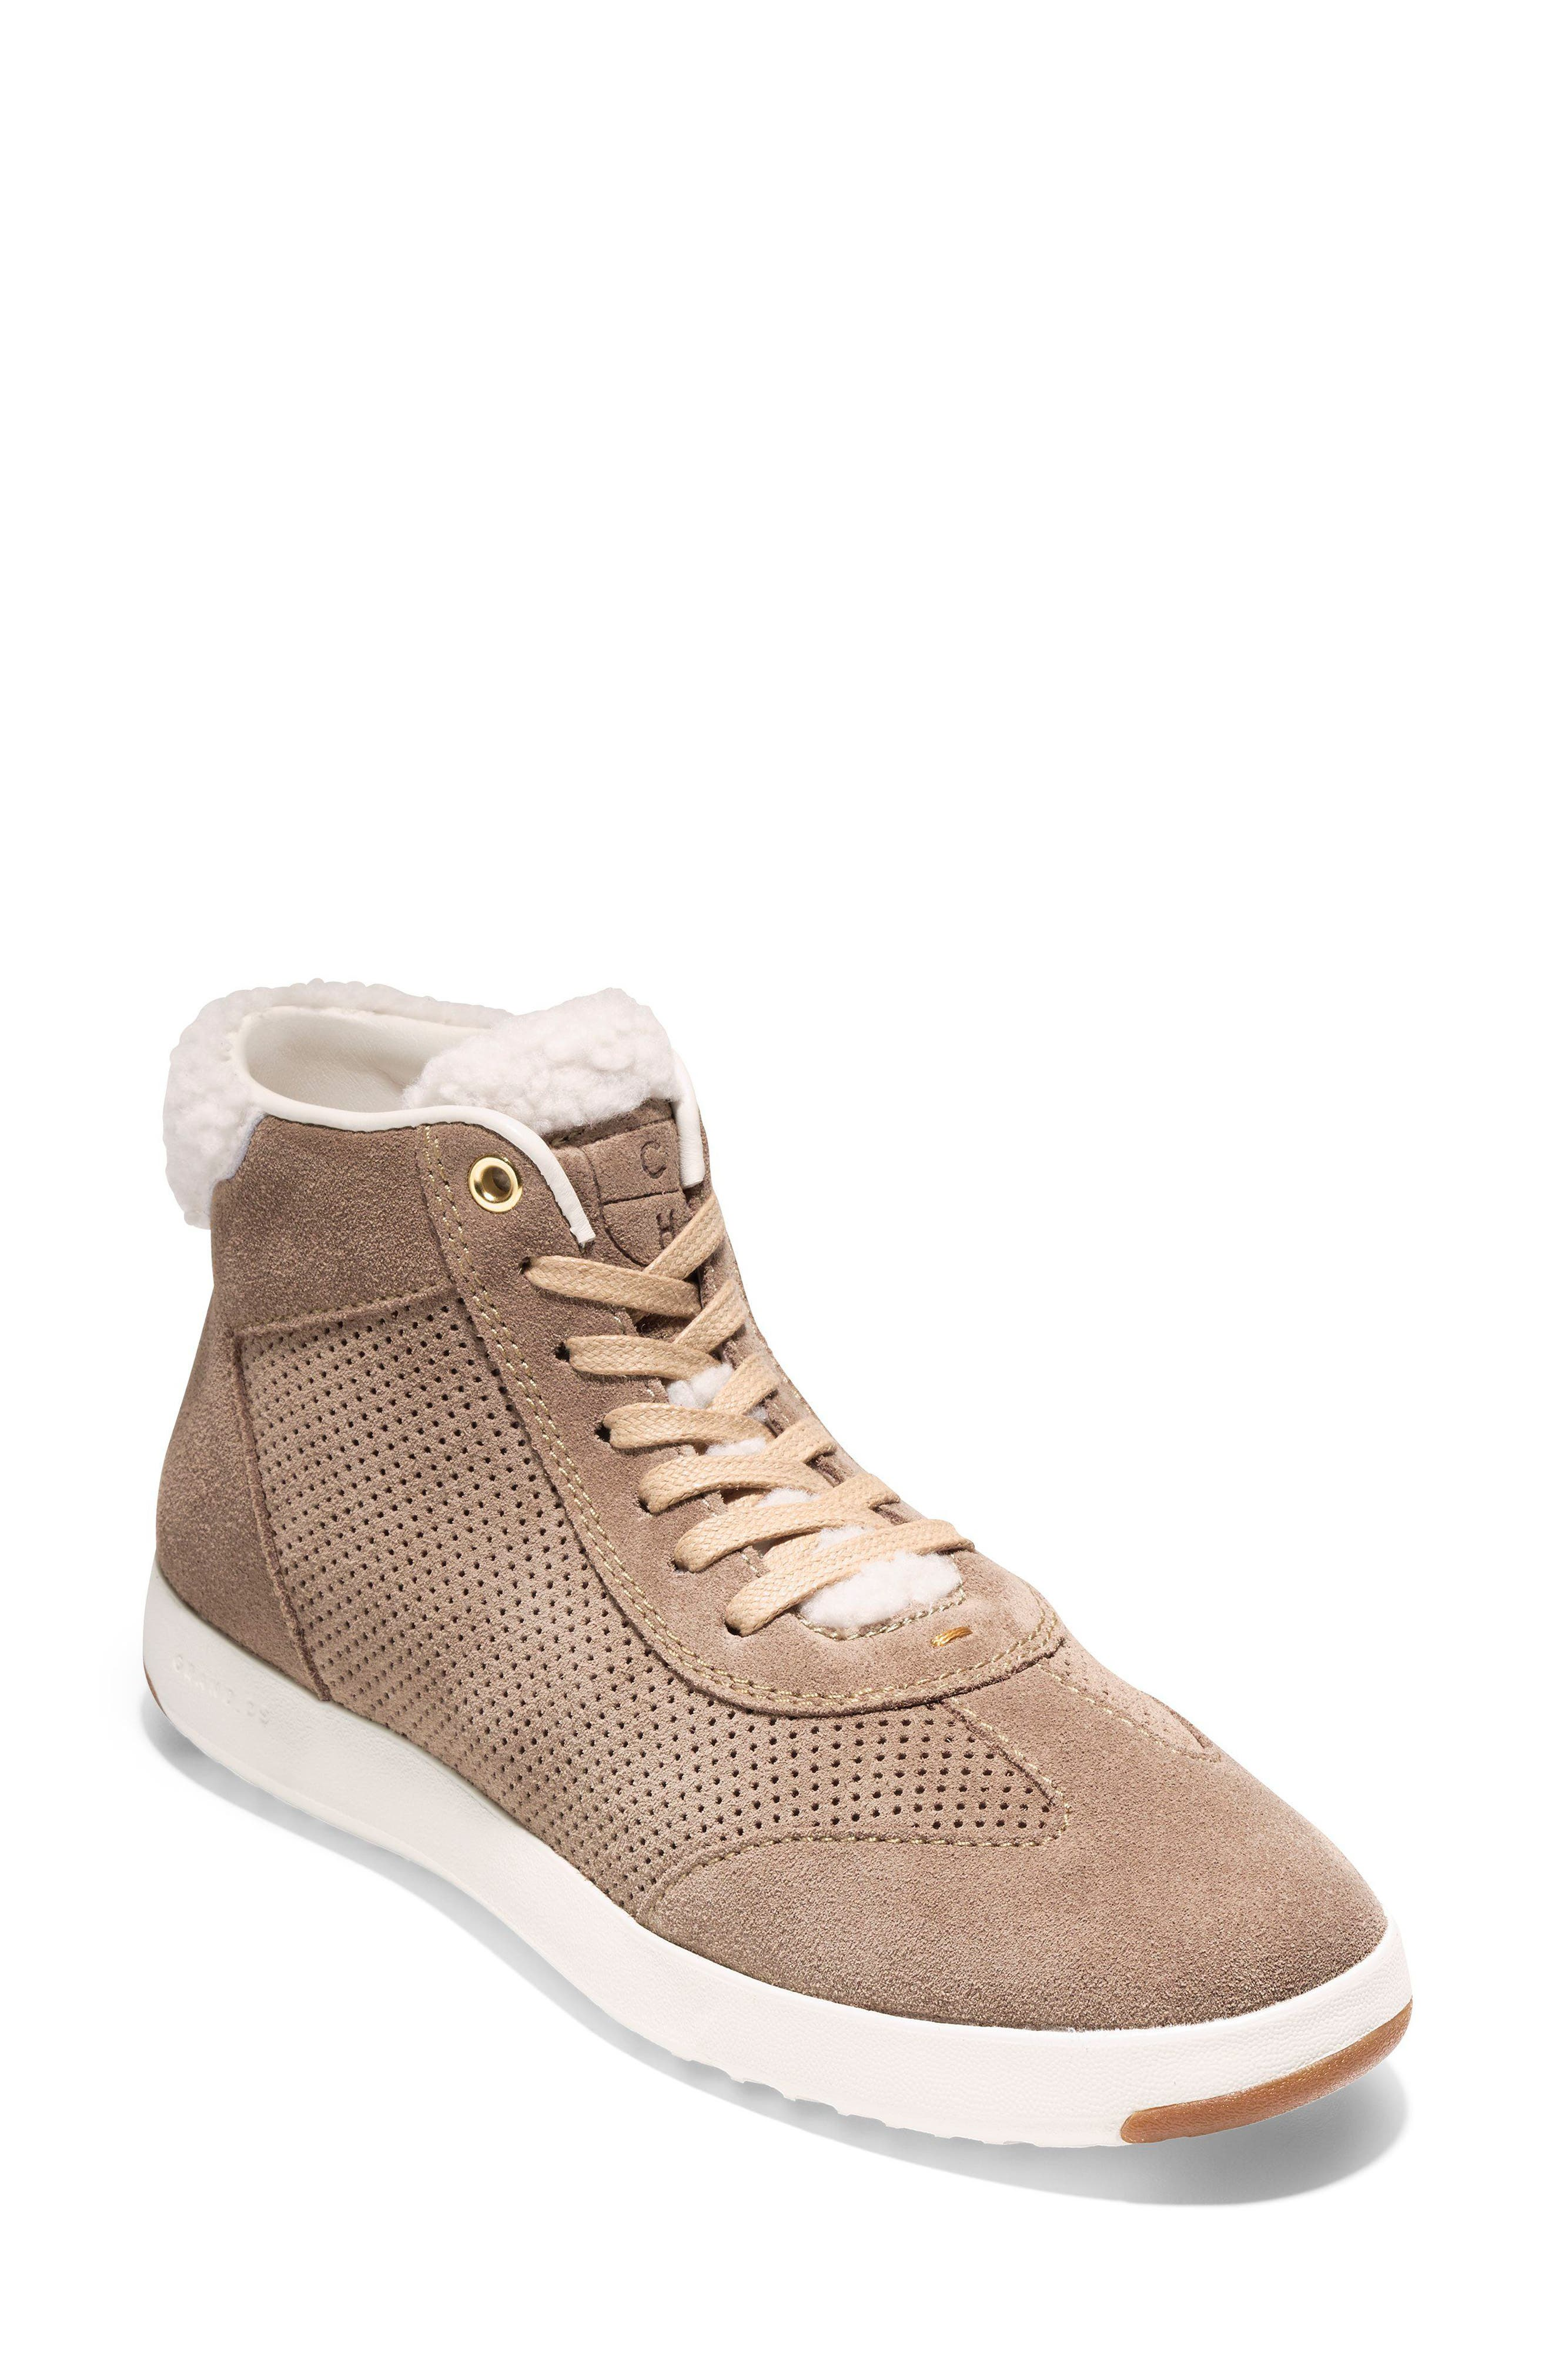 GrandPro High Top Sneaker,                             Main thumbnail 1, color,                             Warm Sand Suede